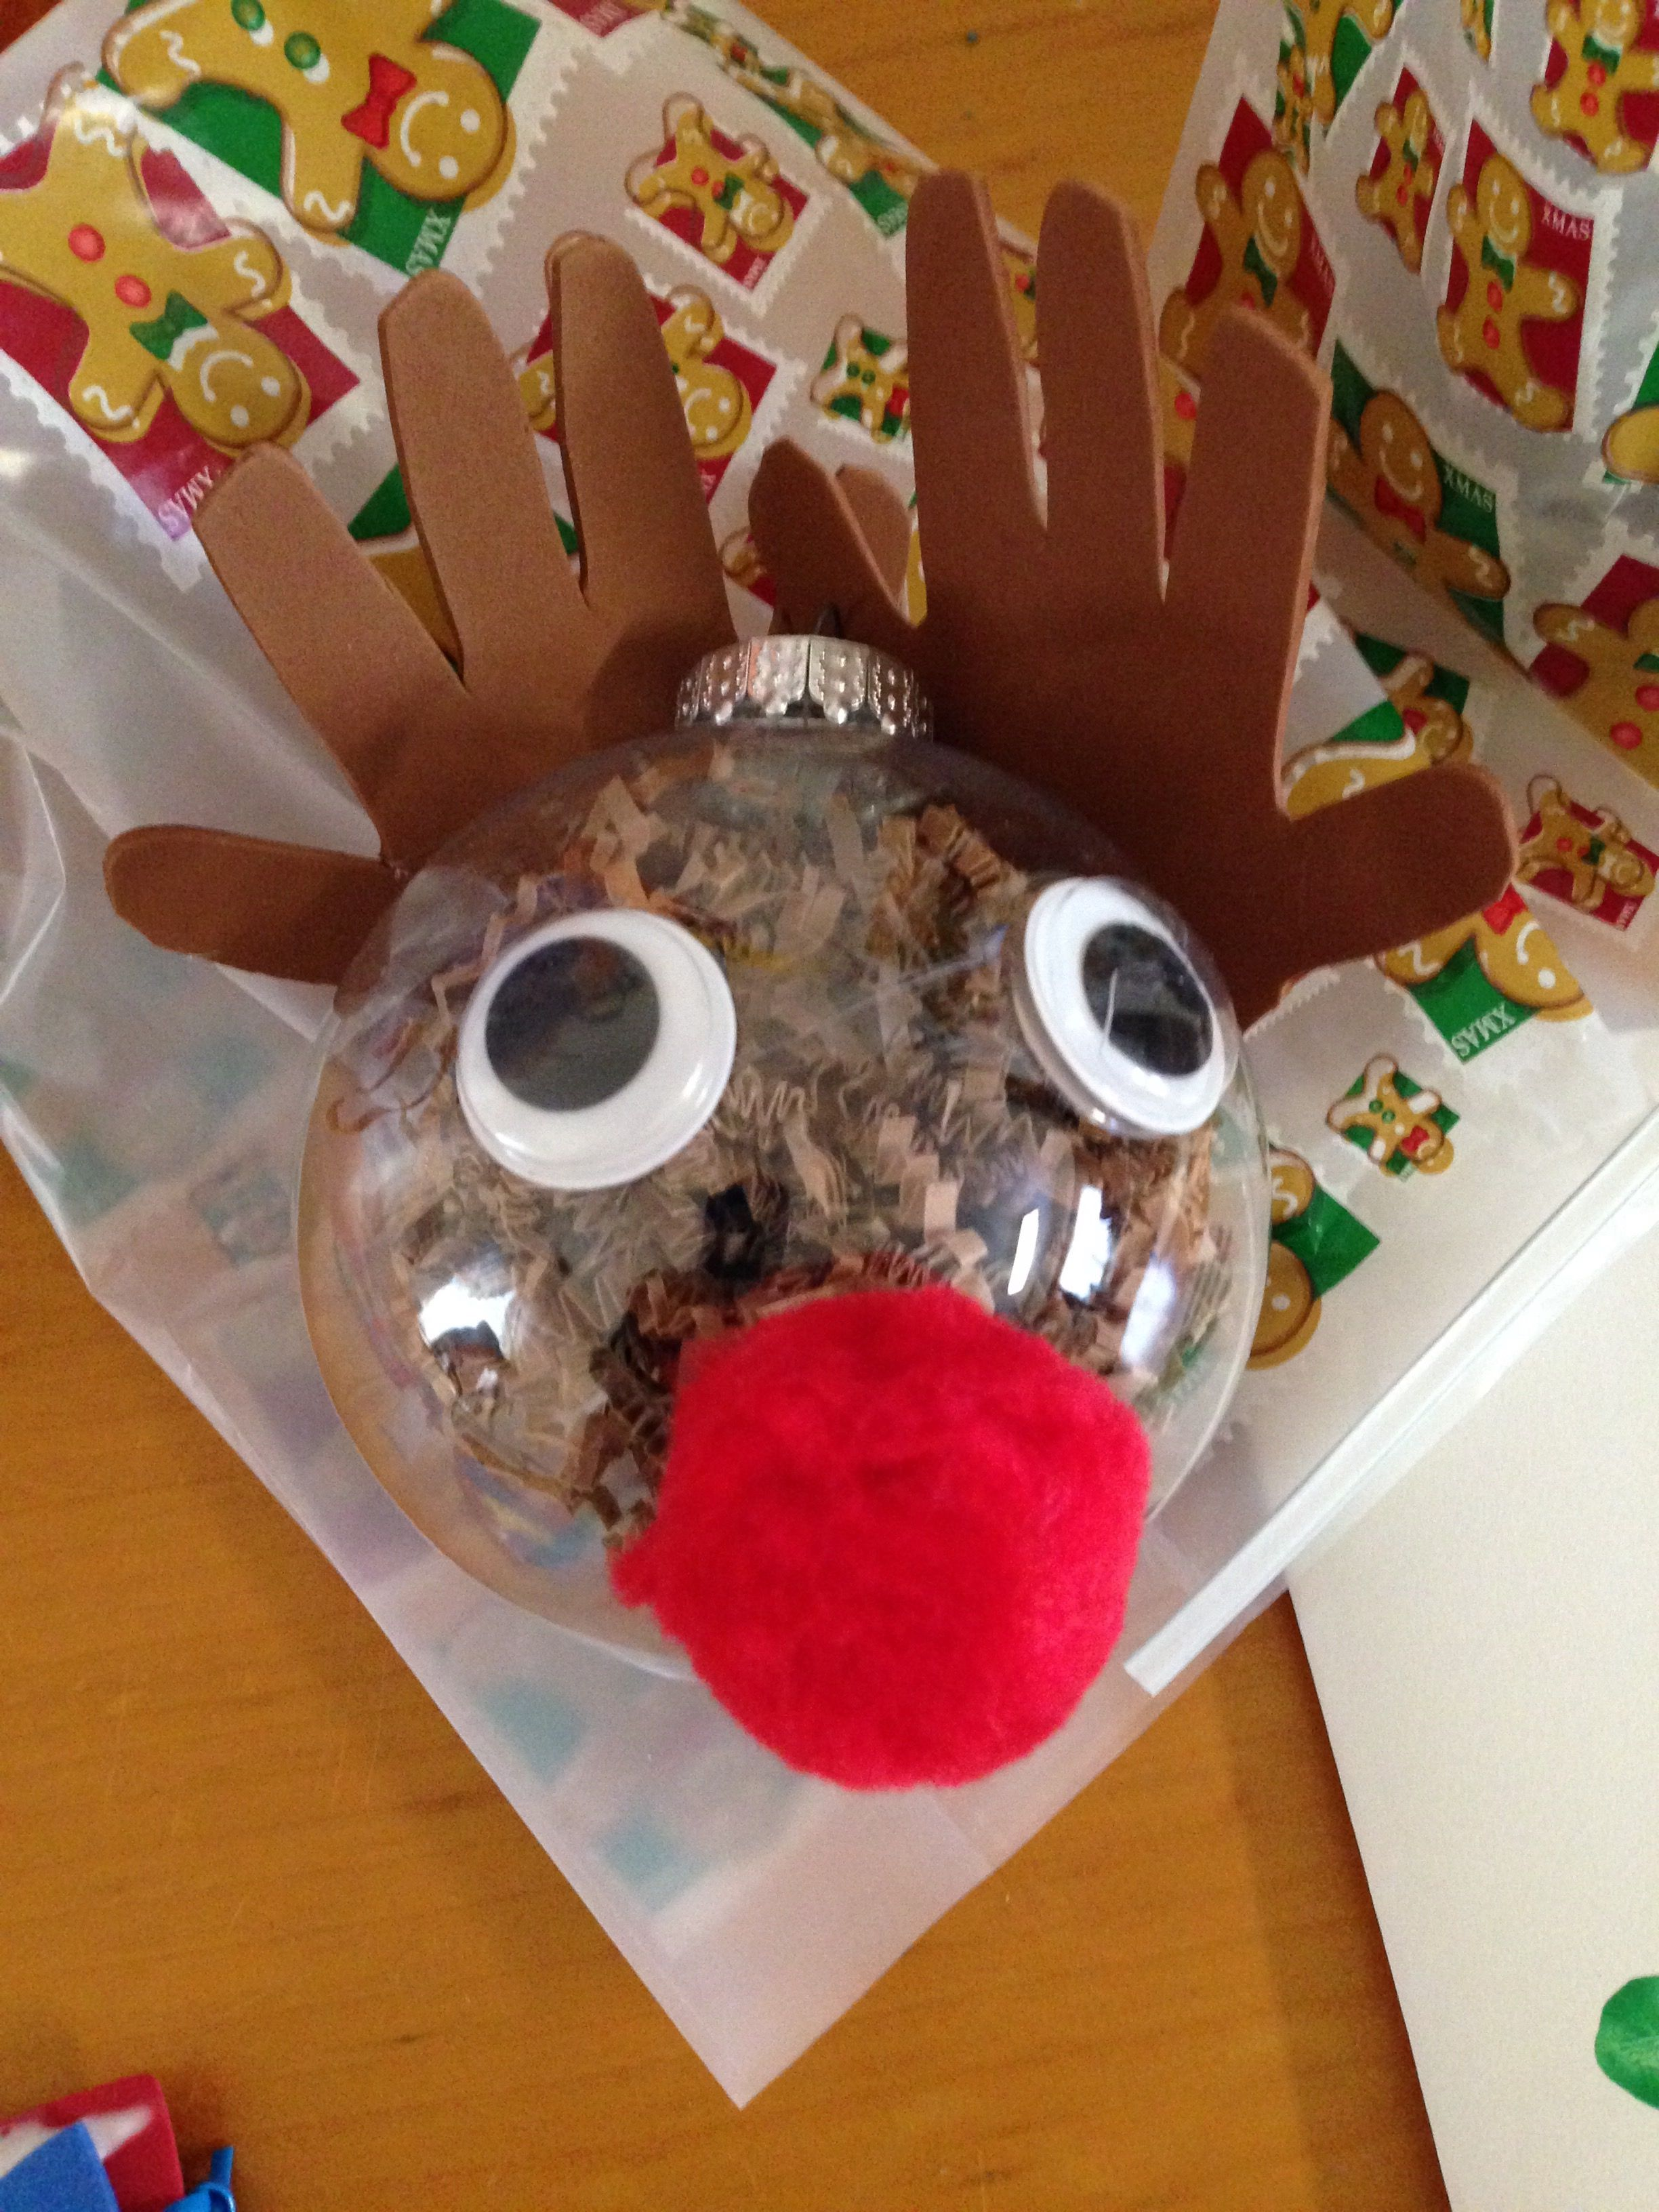 Our Rudolph The Red Nosed Reindeer Plastic Ornament Bulb Foam